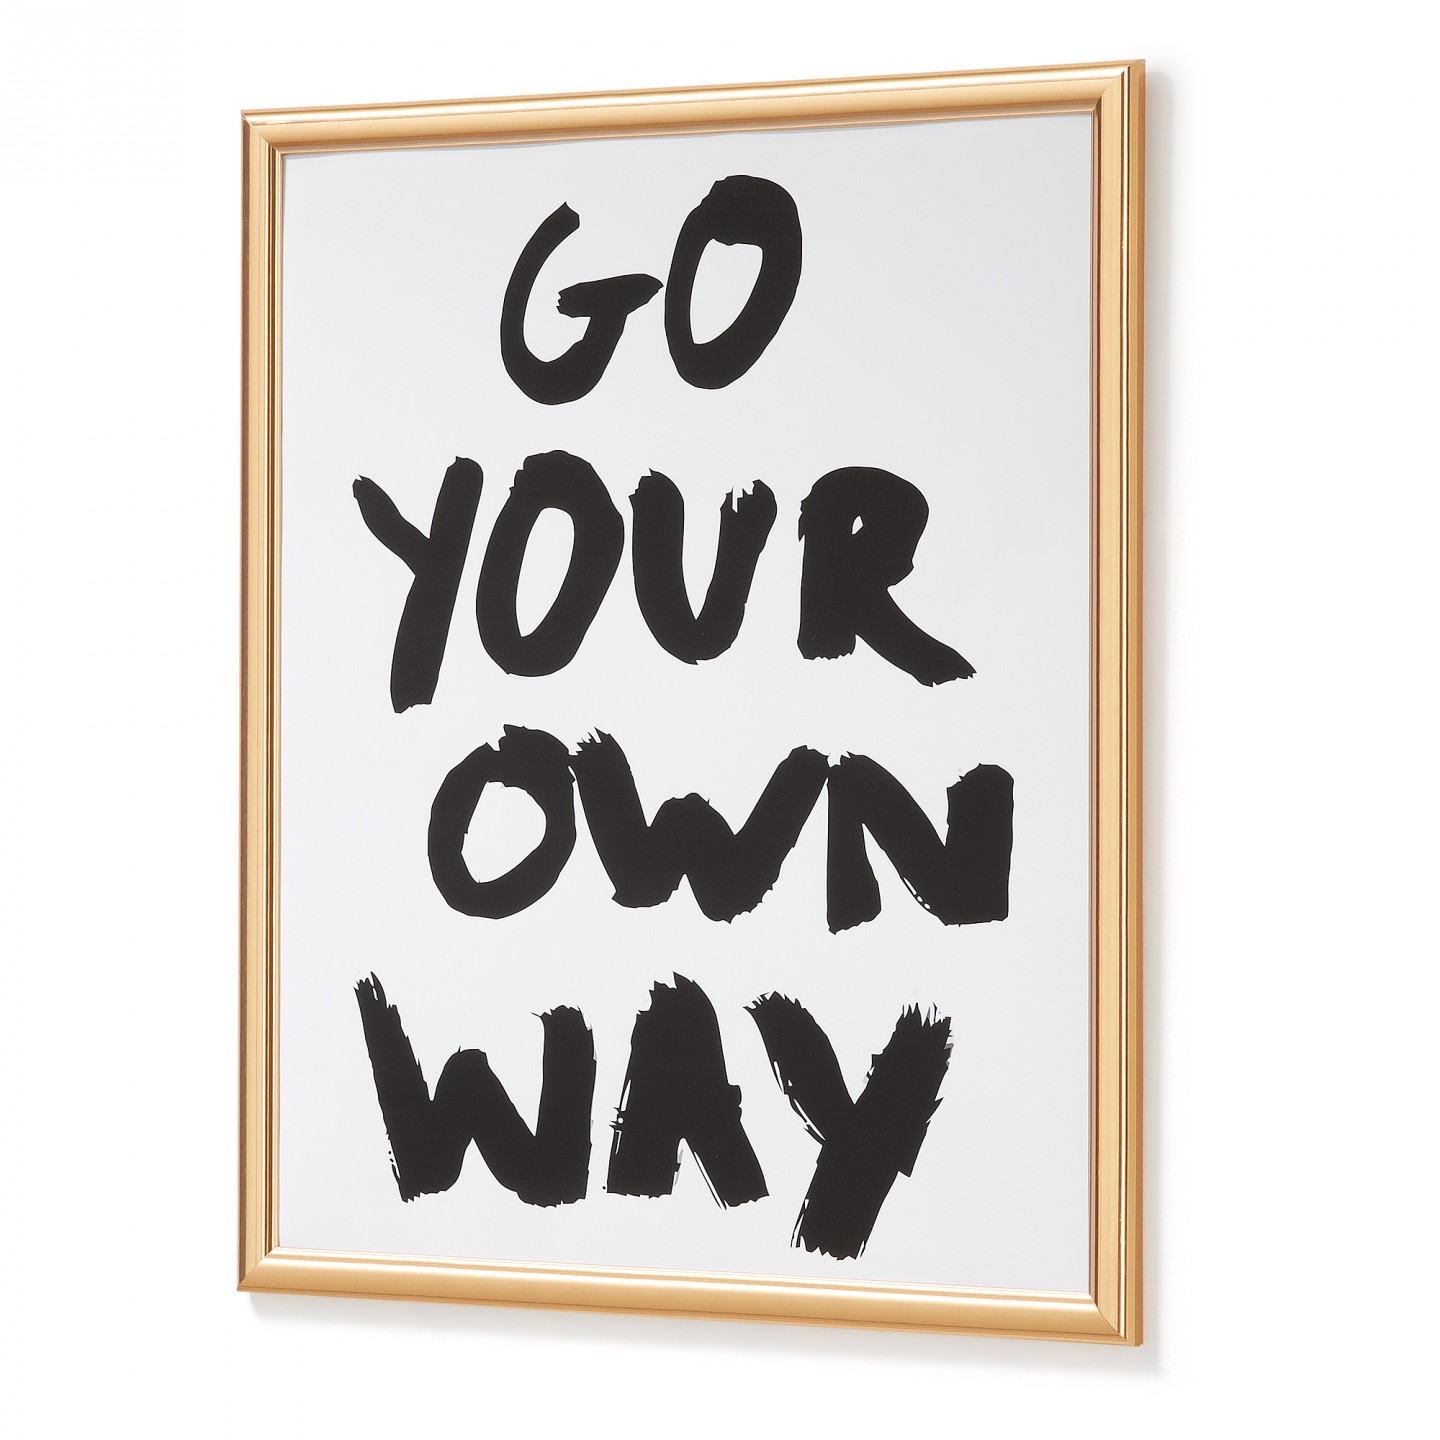 CUADRO GO YOUR WAY 54X44 CM